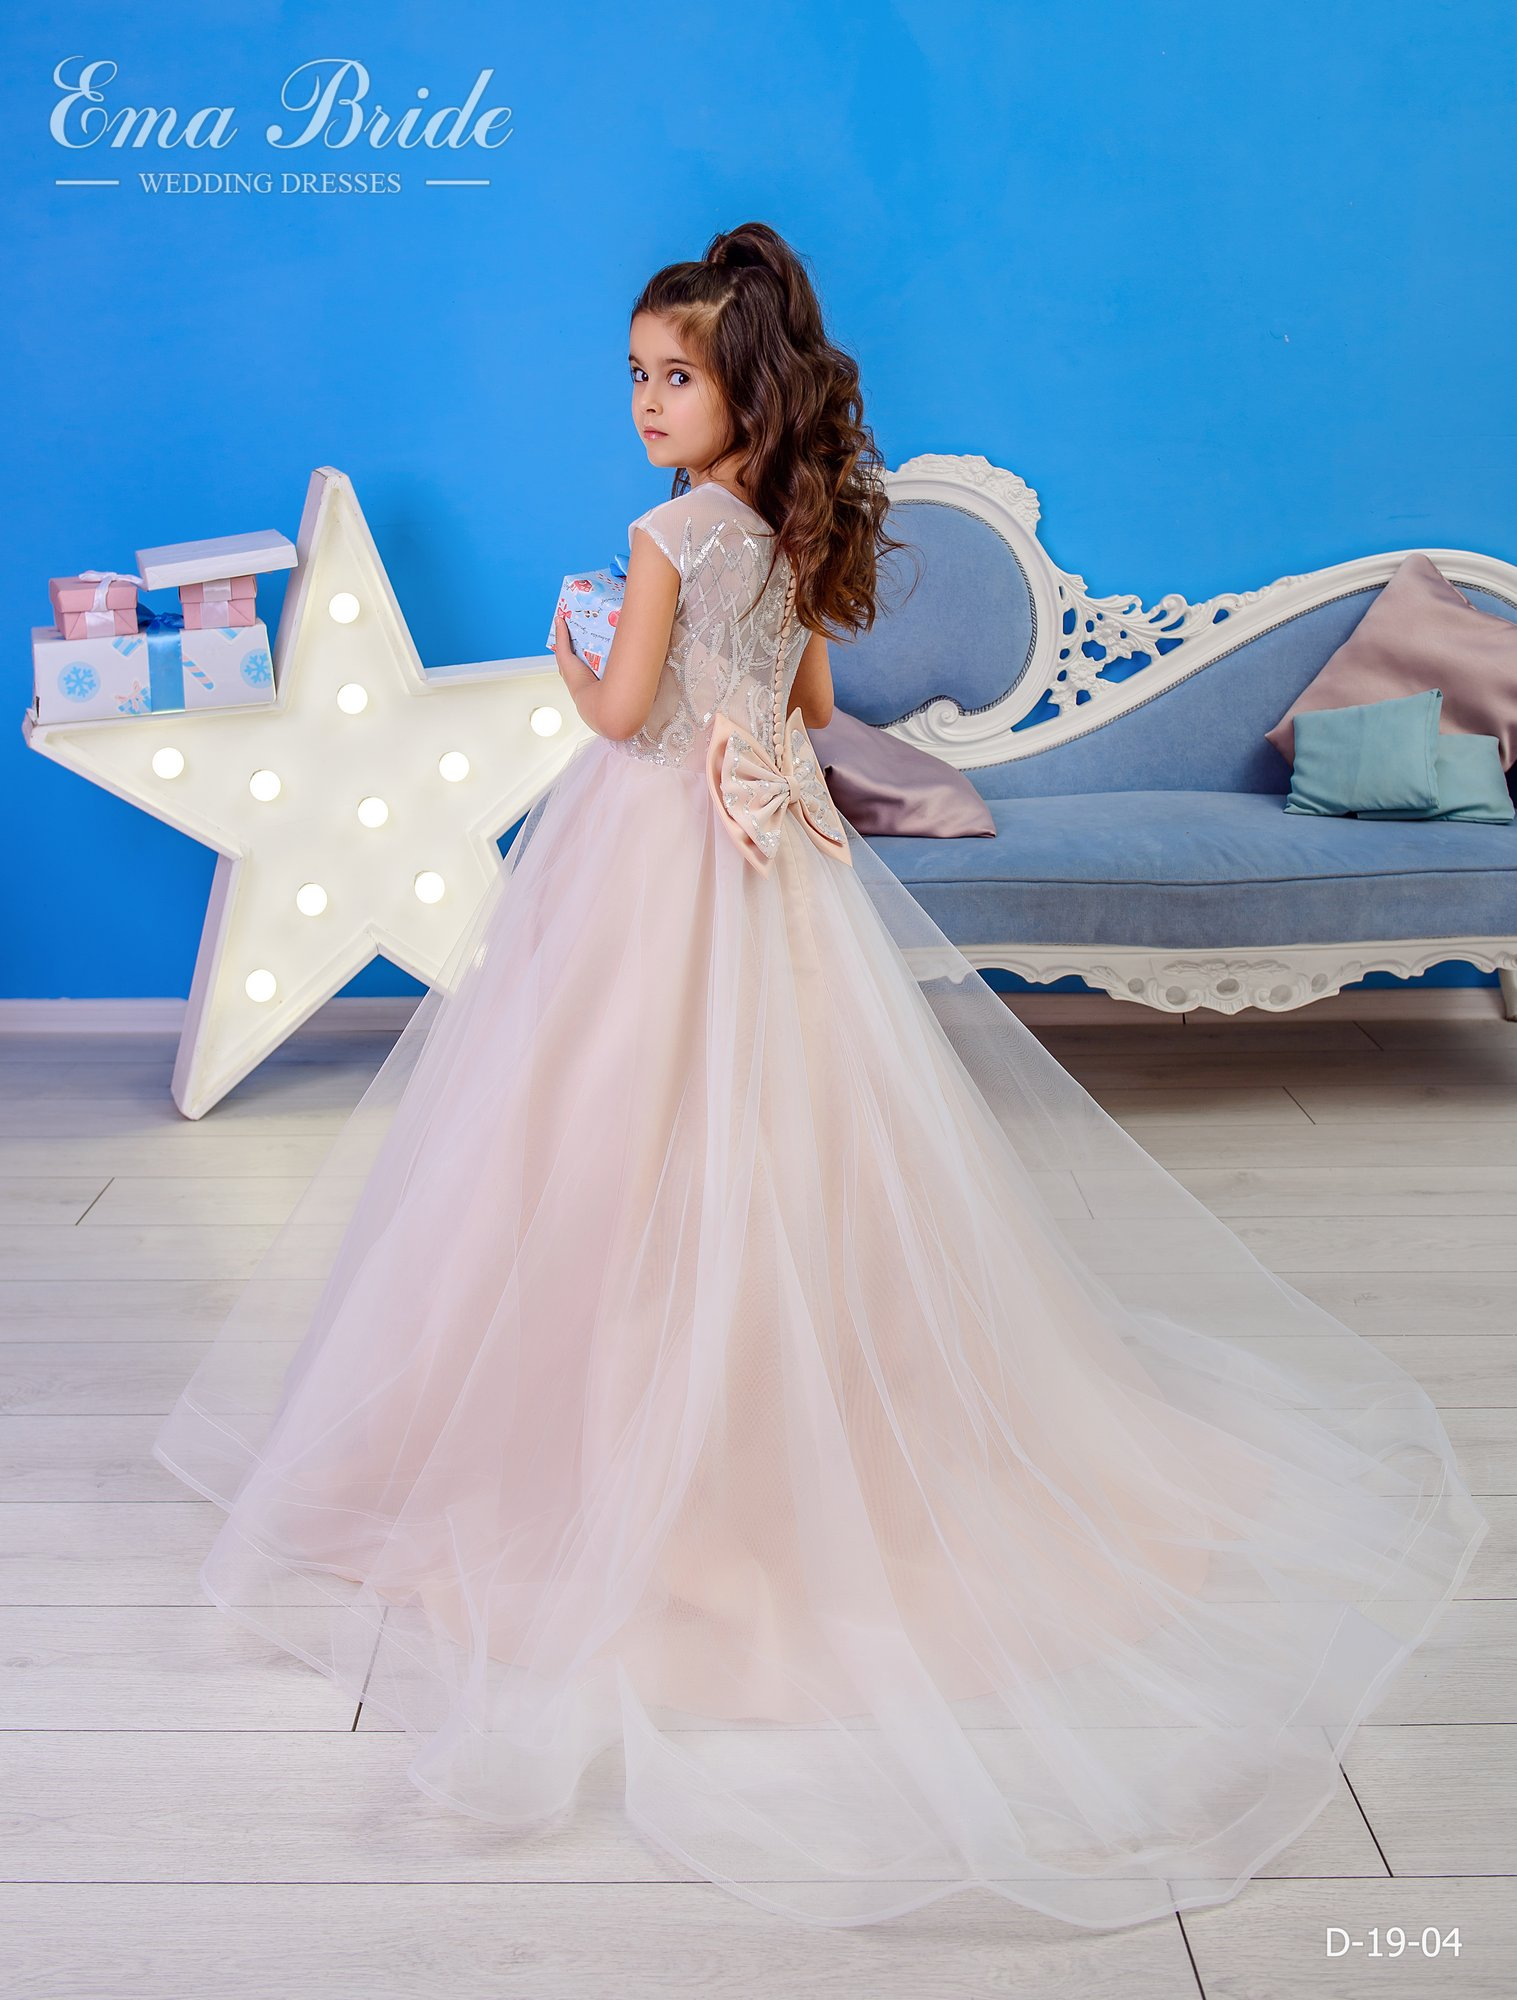 Children's dress by EmaBride D-19-04 2019-1